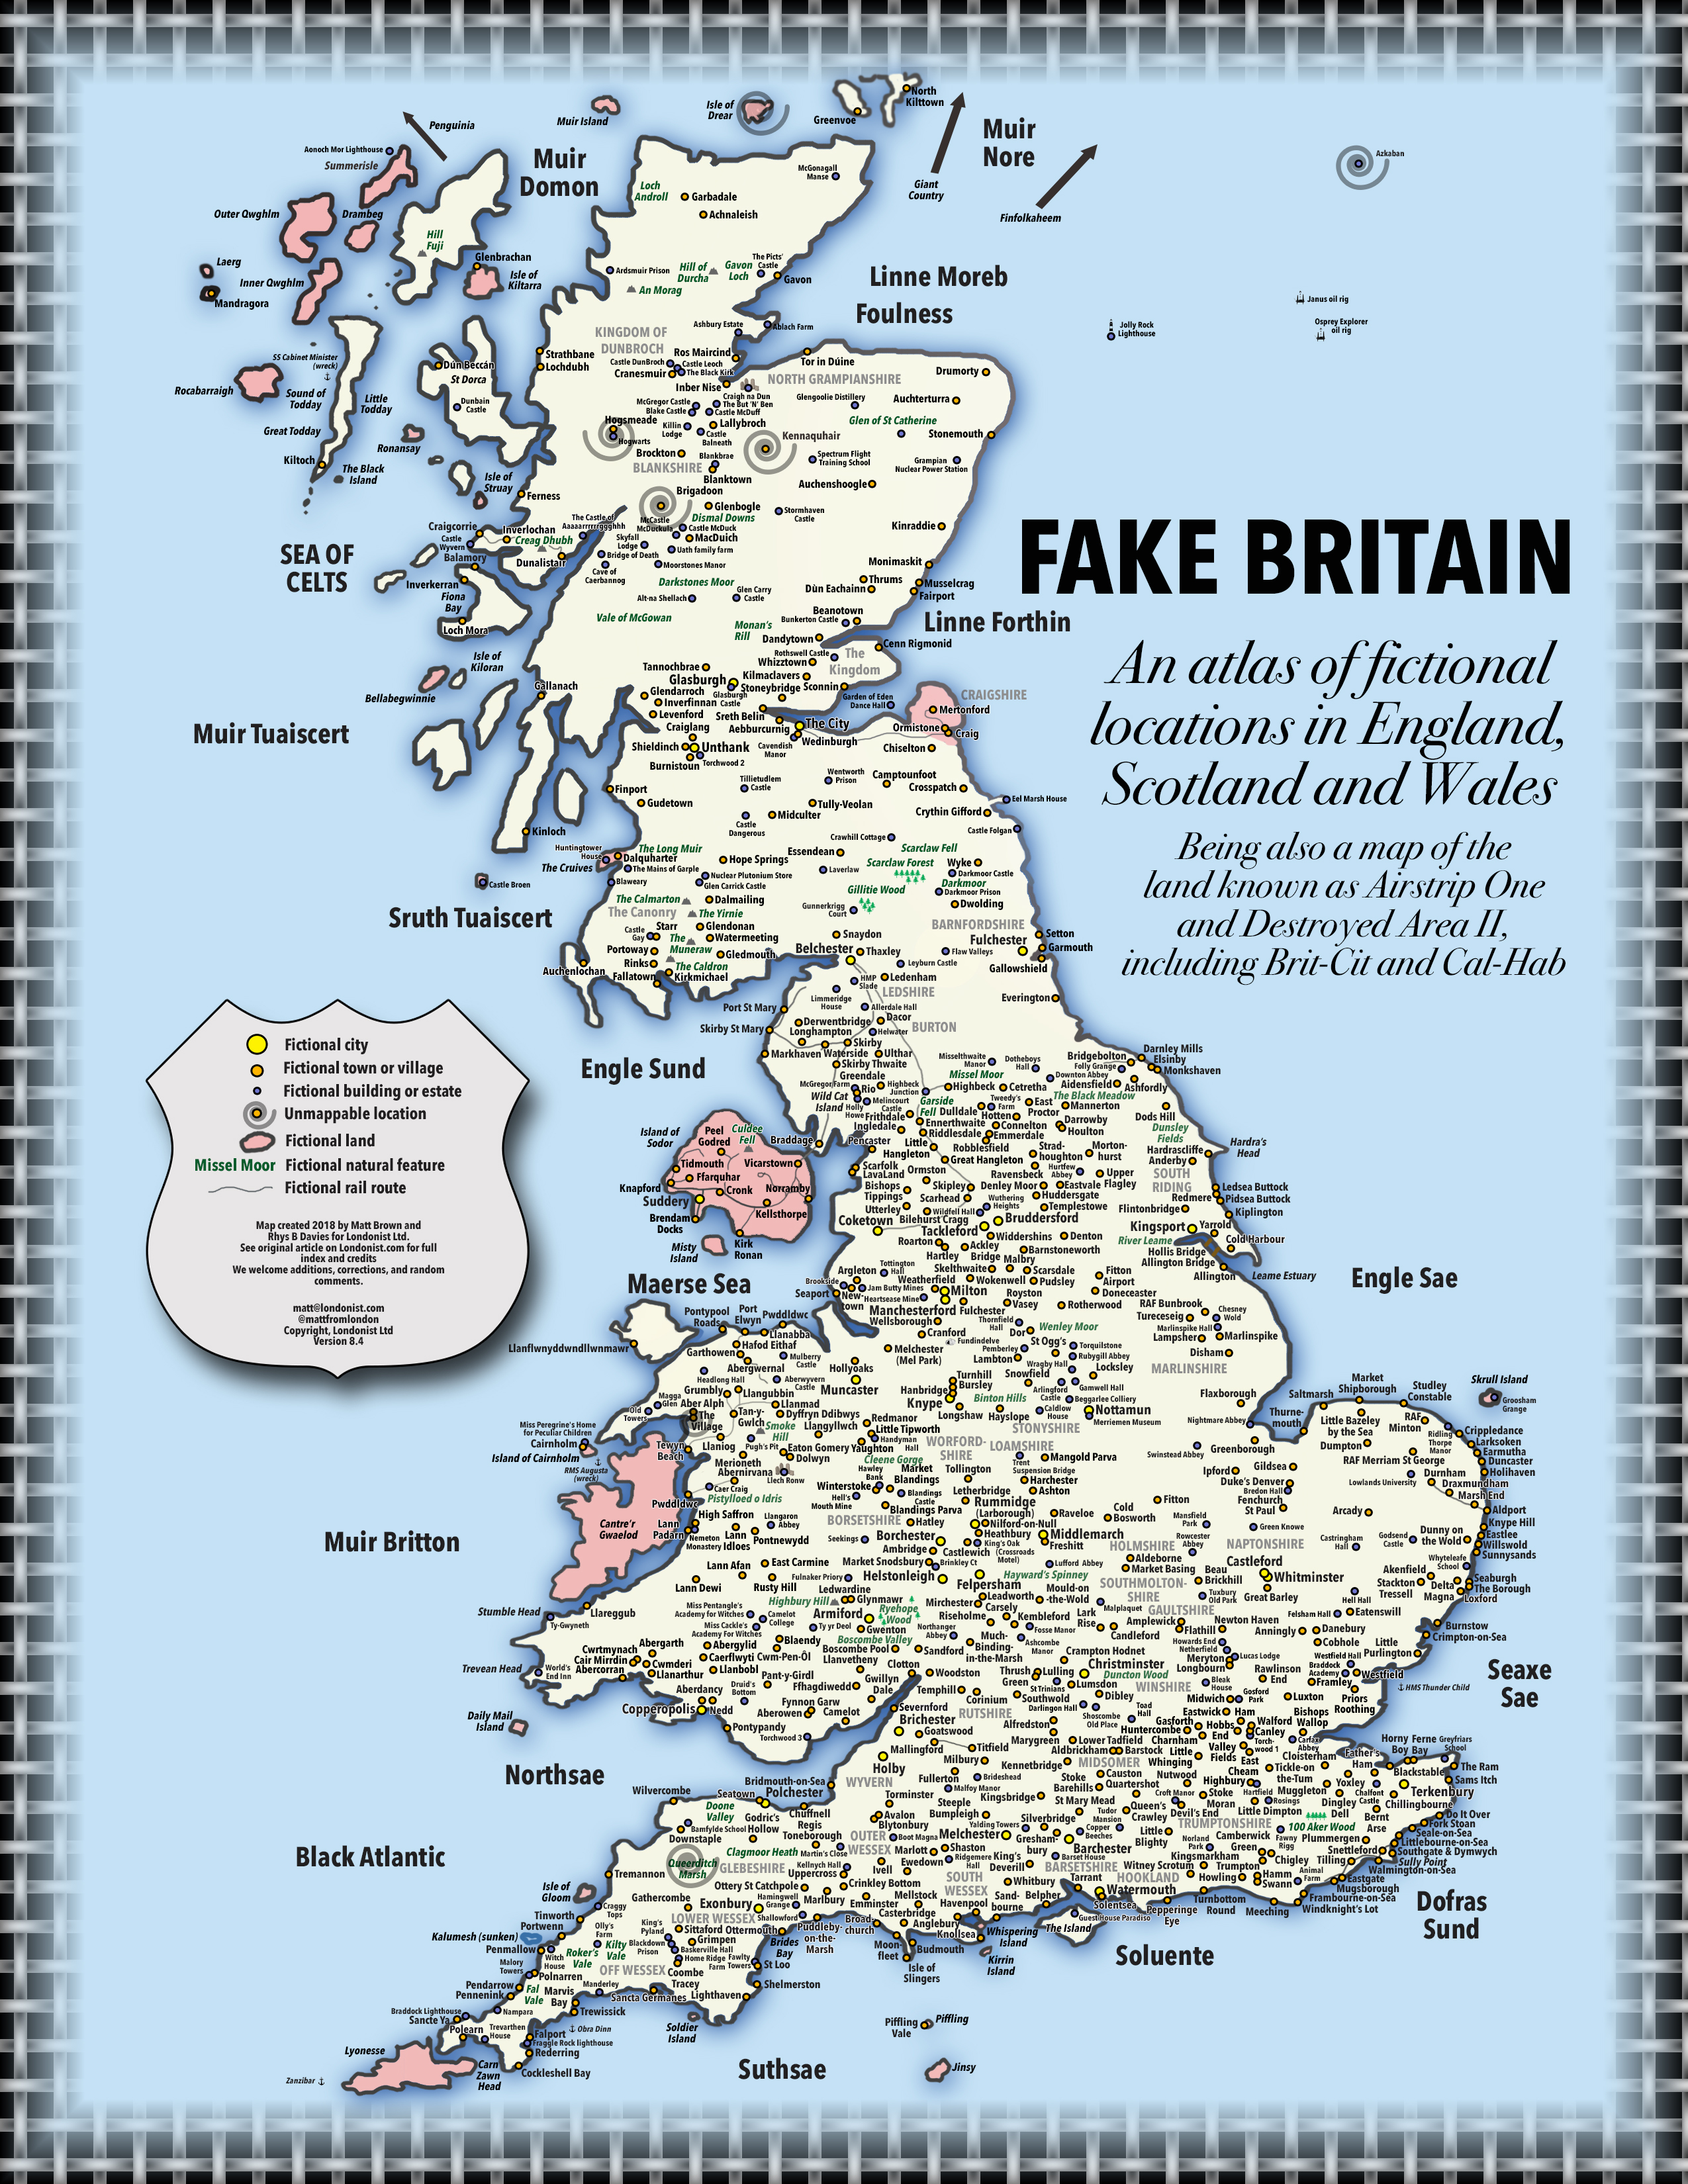 Map Of England And Wales With Cities.Fake Britain A Map Of Fictional Locations In England Scotland And